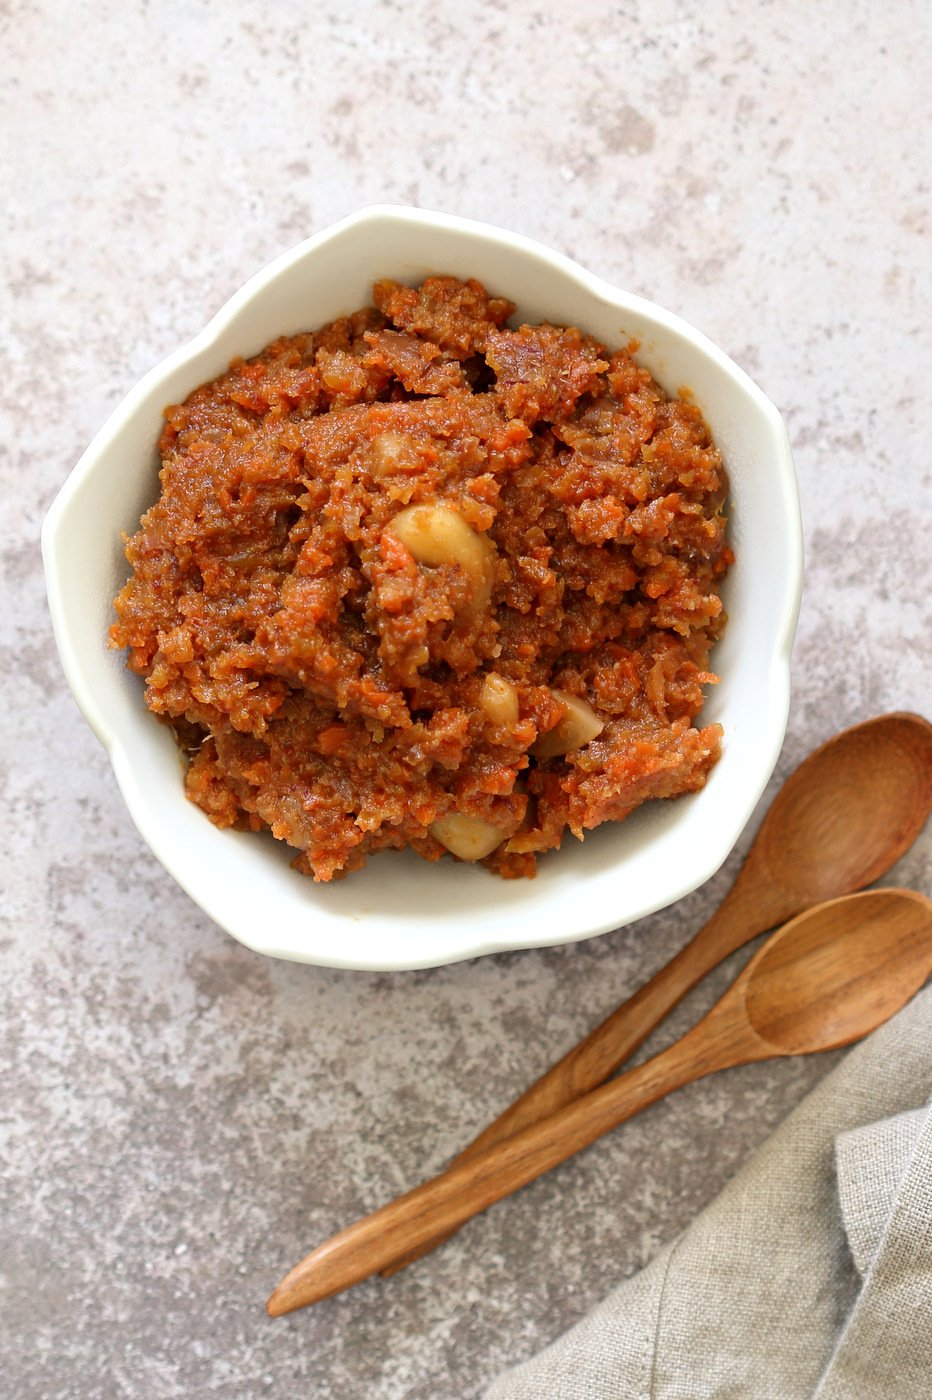 Instant Pot Gajar Halwa - Vegan Carrot Halwa Recipe. Carrot Halwa is an Indian dessert, a flourless Carrot Cake Crumble/pudding that is spiced with cardamom and served during festivals. Vegan Gluten-free Soy-free Recipe.